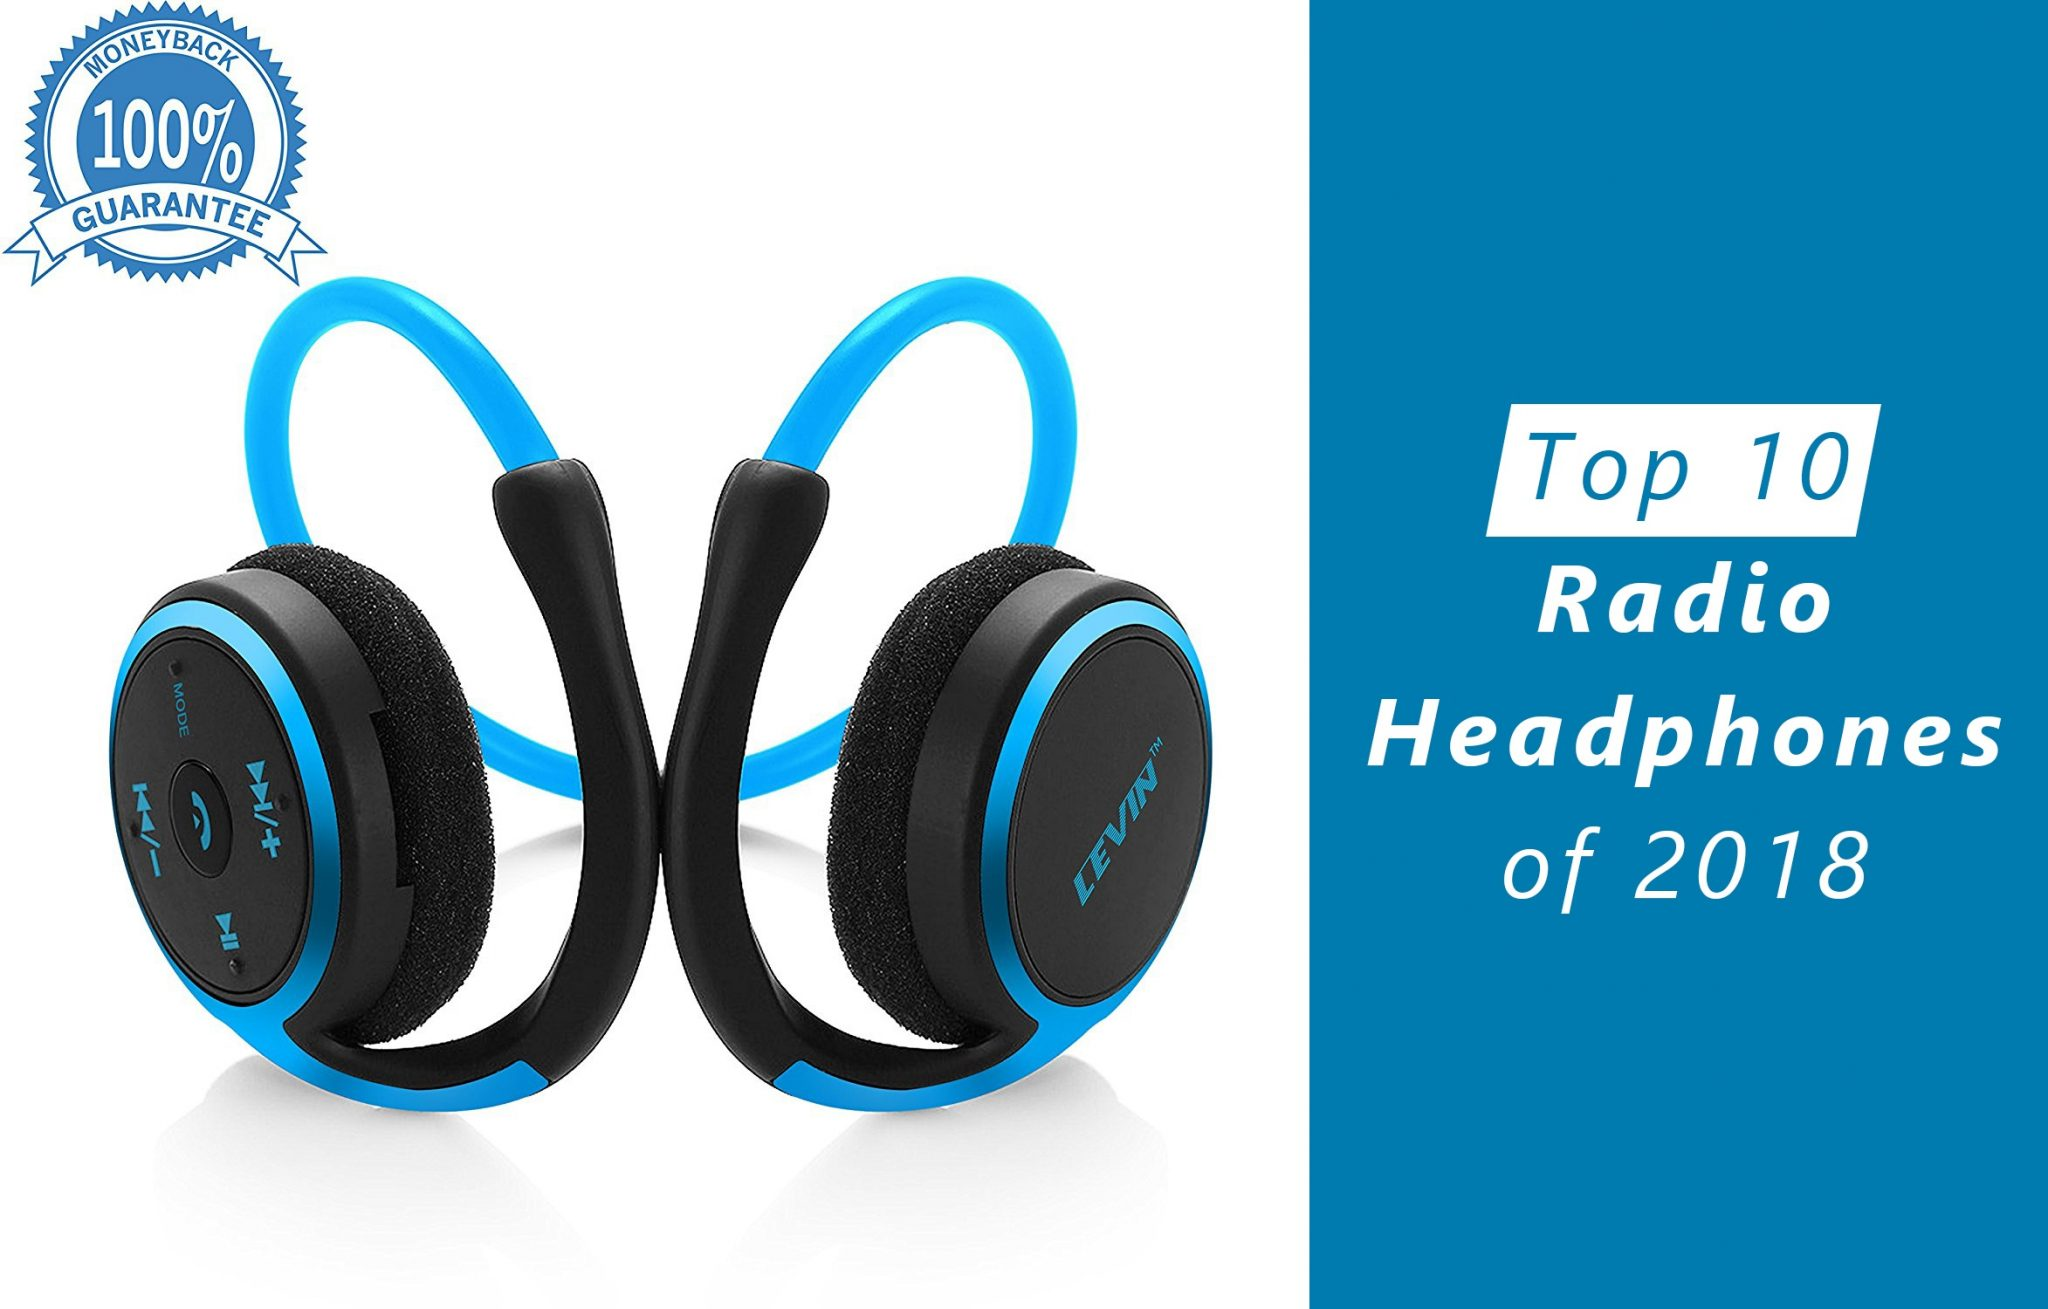 Top 10 Radio Headphones